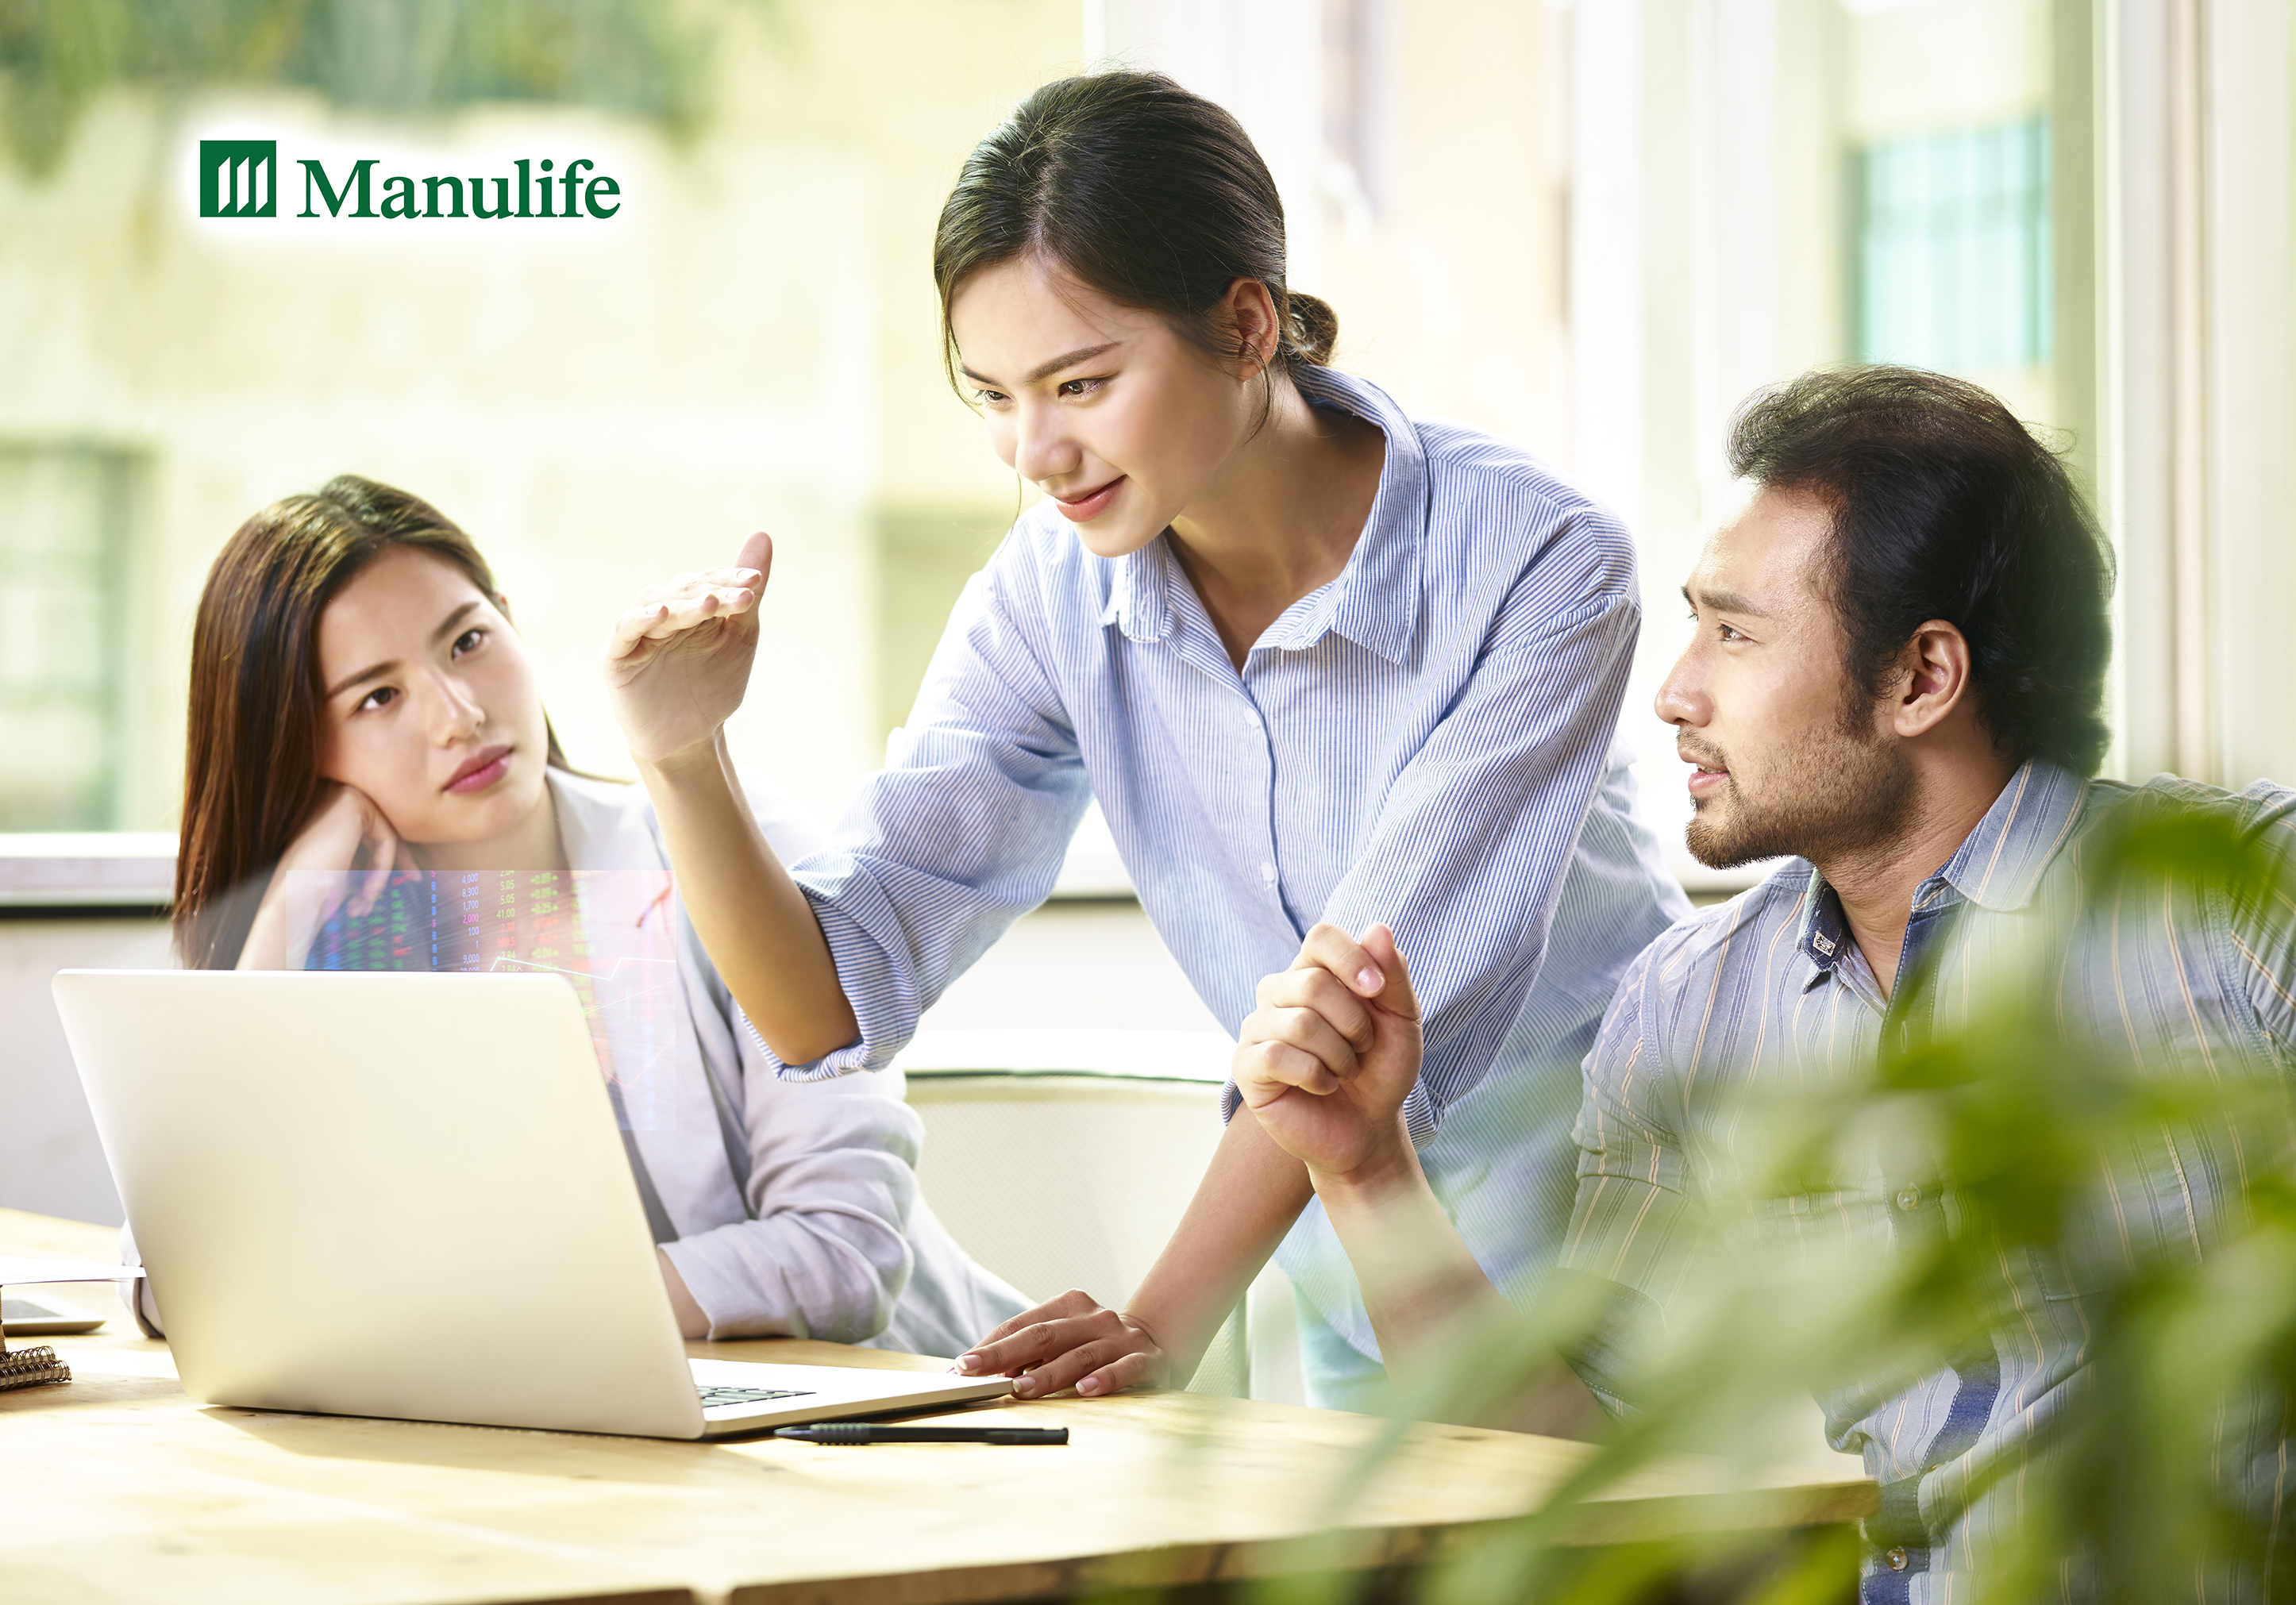 manulife vietnam launches new flagship product